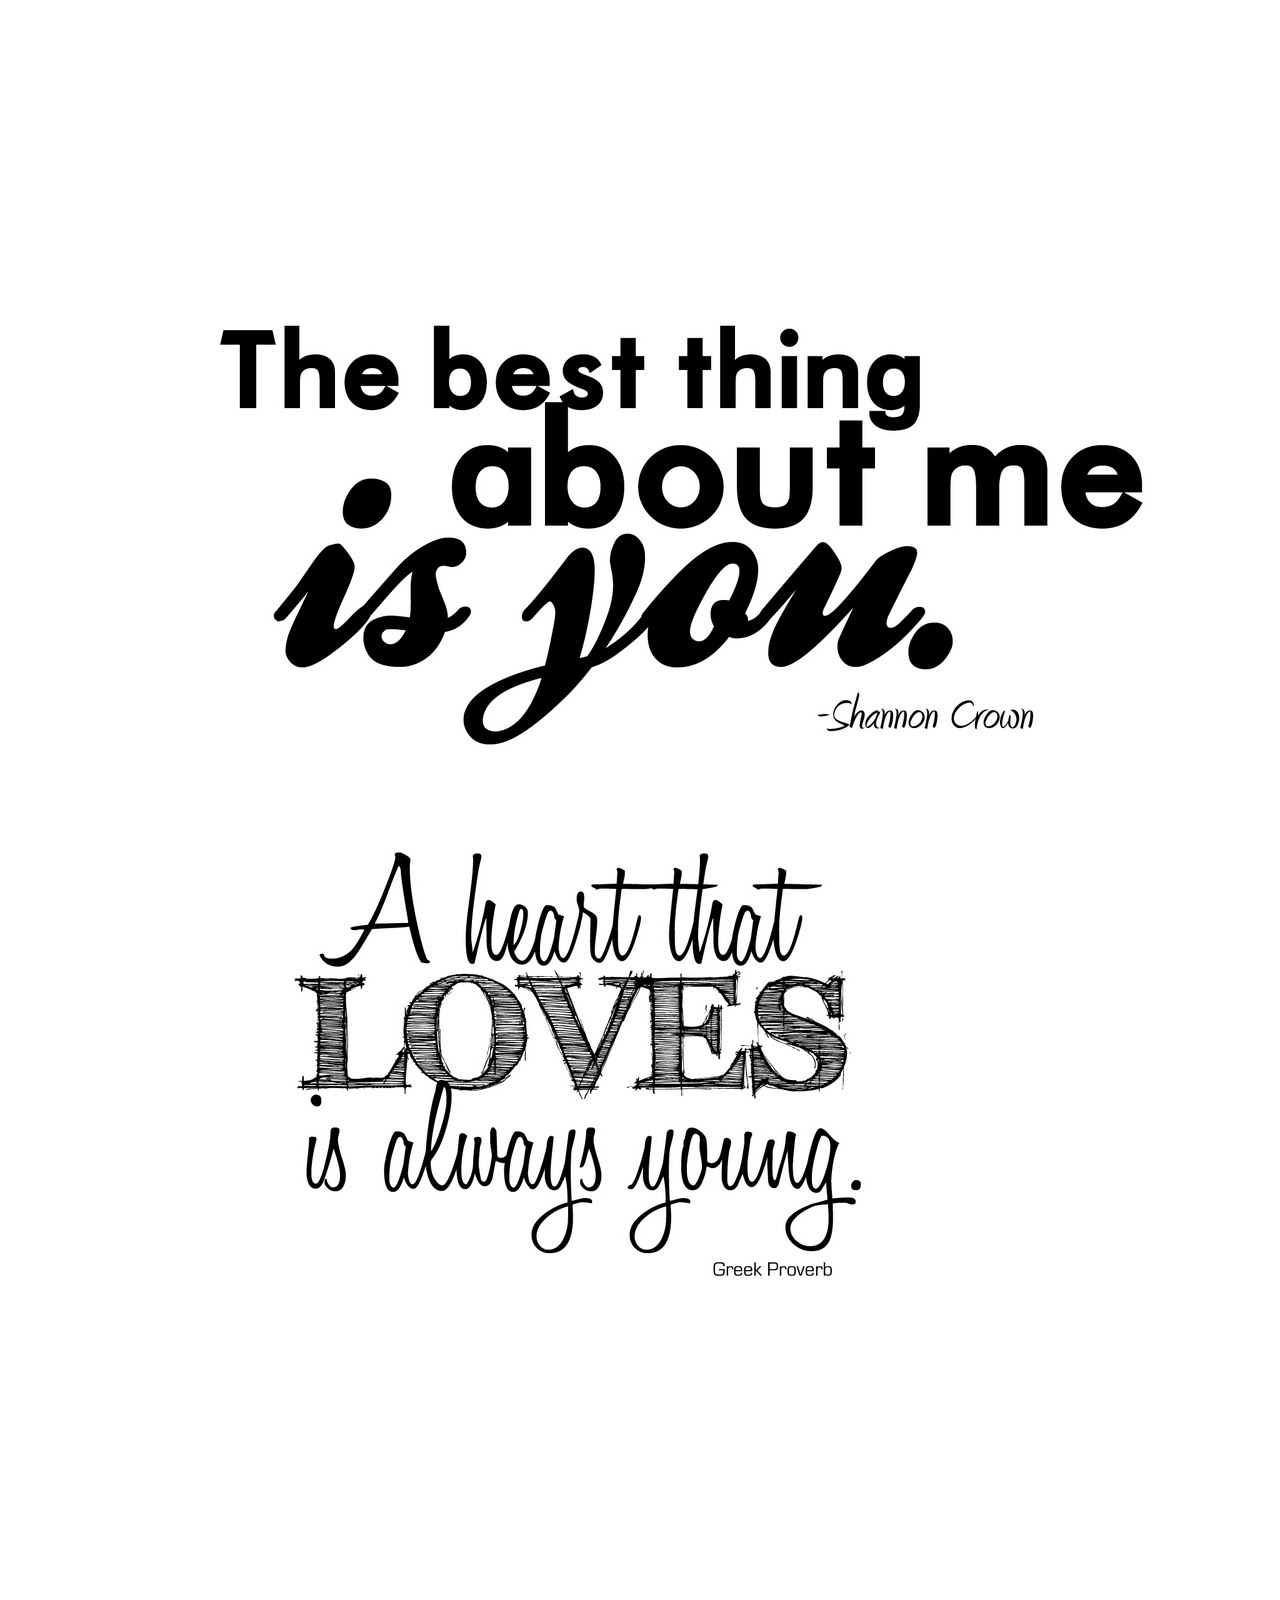 Country Love Quotes Cute Love Quotes Song Lyrics  Wishes Image Quotes And Sayings Page